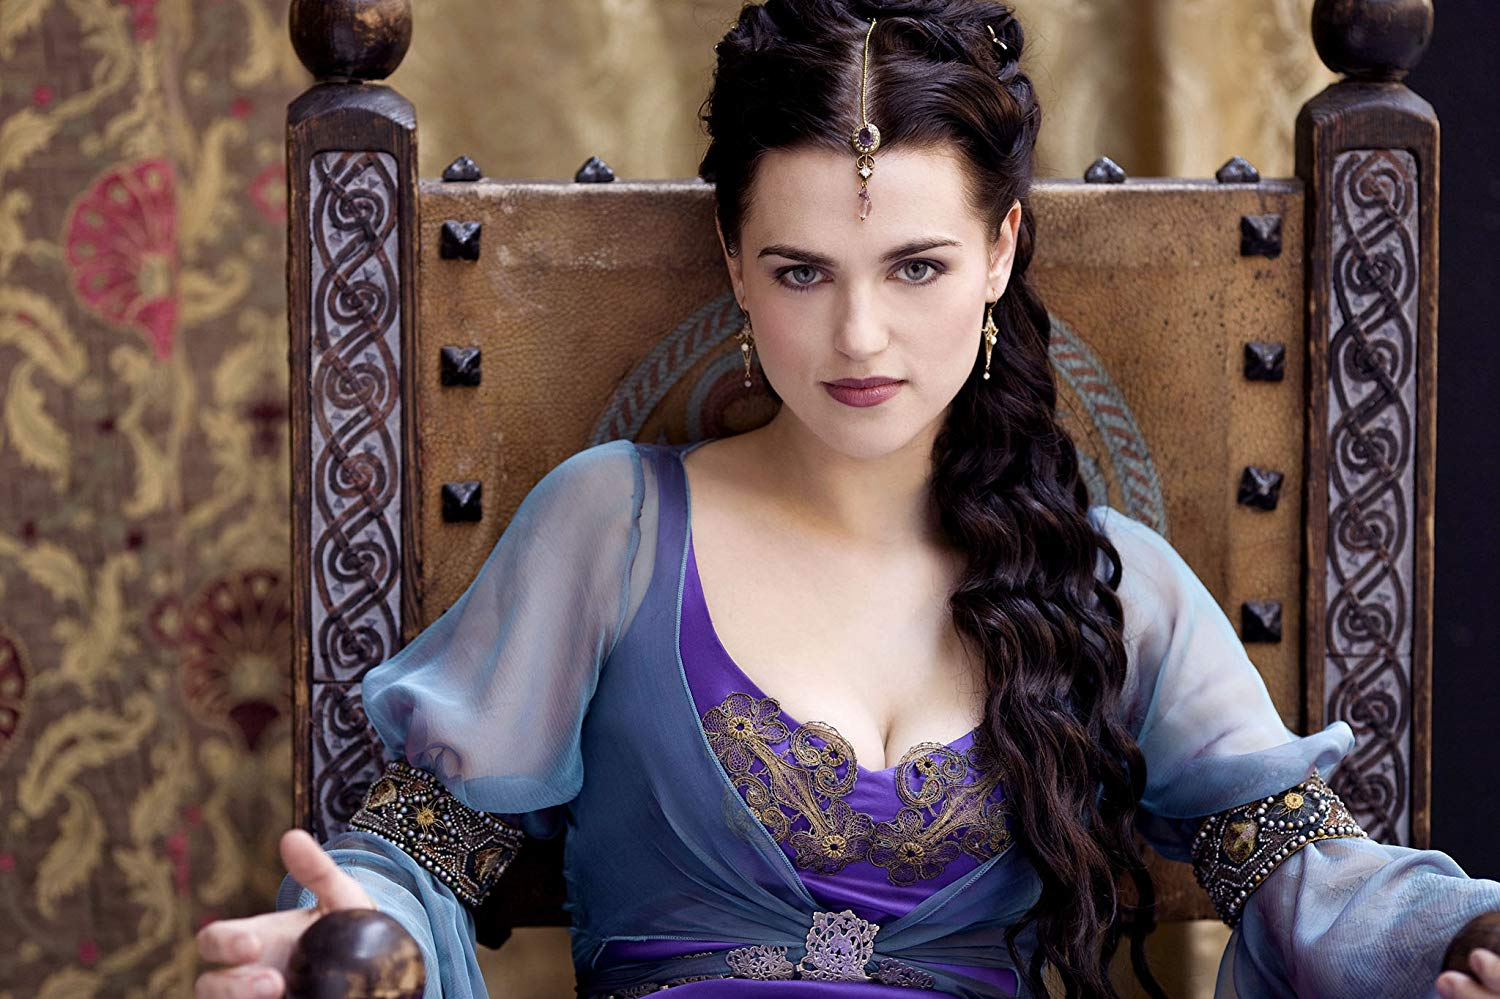 Morgana Pendragon sits on a throne